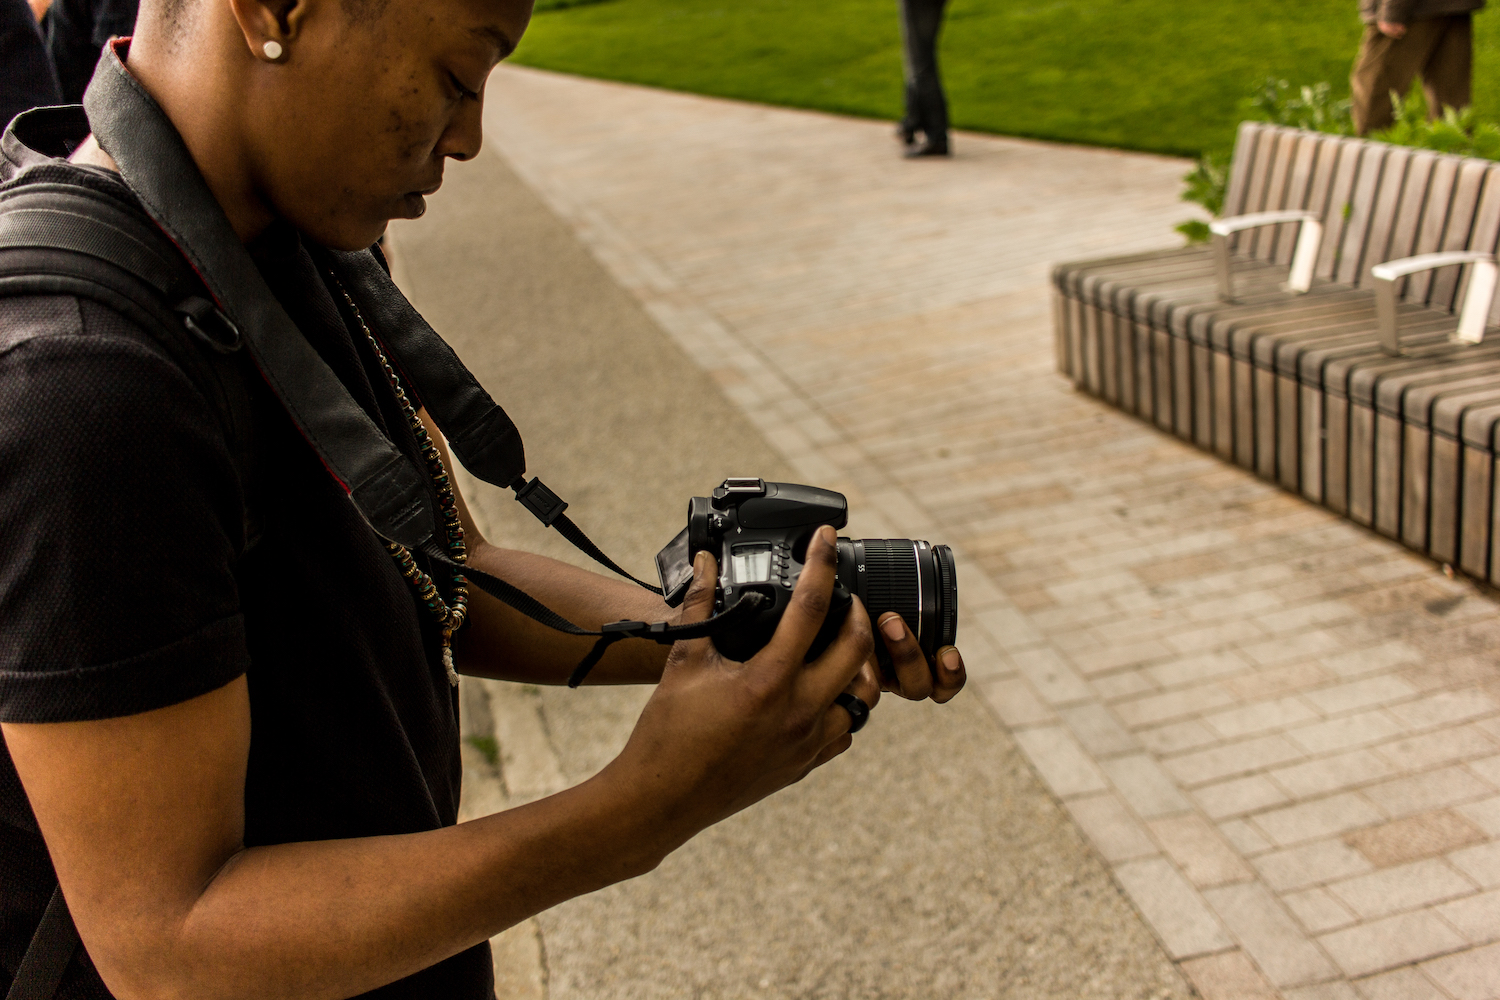 Professional Photography Close-Up Of Black Woman Wearing Black T-Shirt With Black Backpack And Dreadlocks Filming With Camera Green Grass In Background Camden London